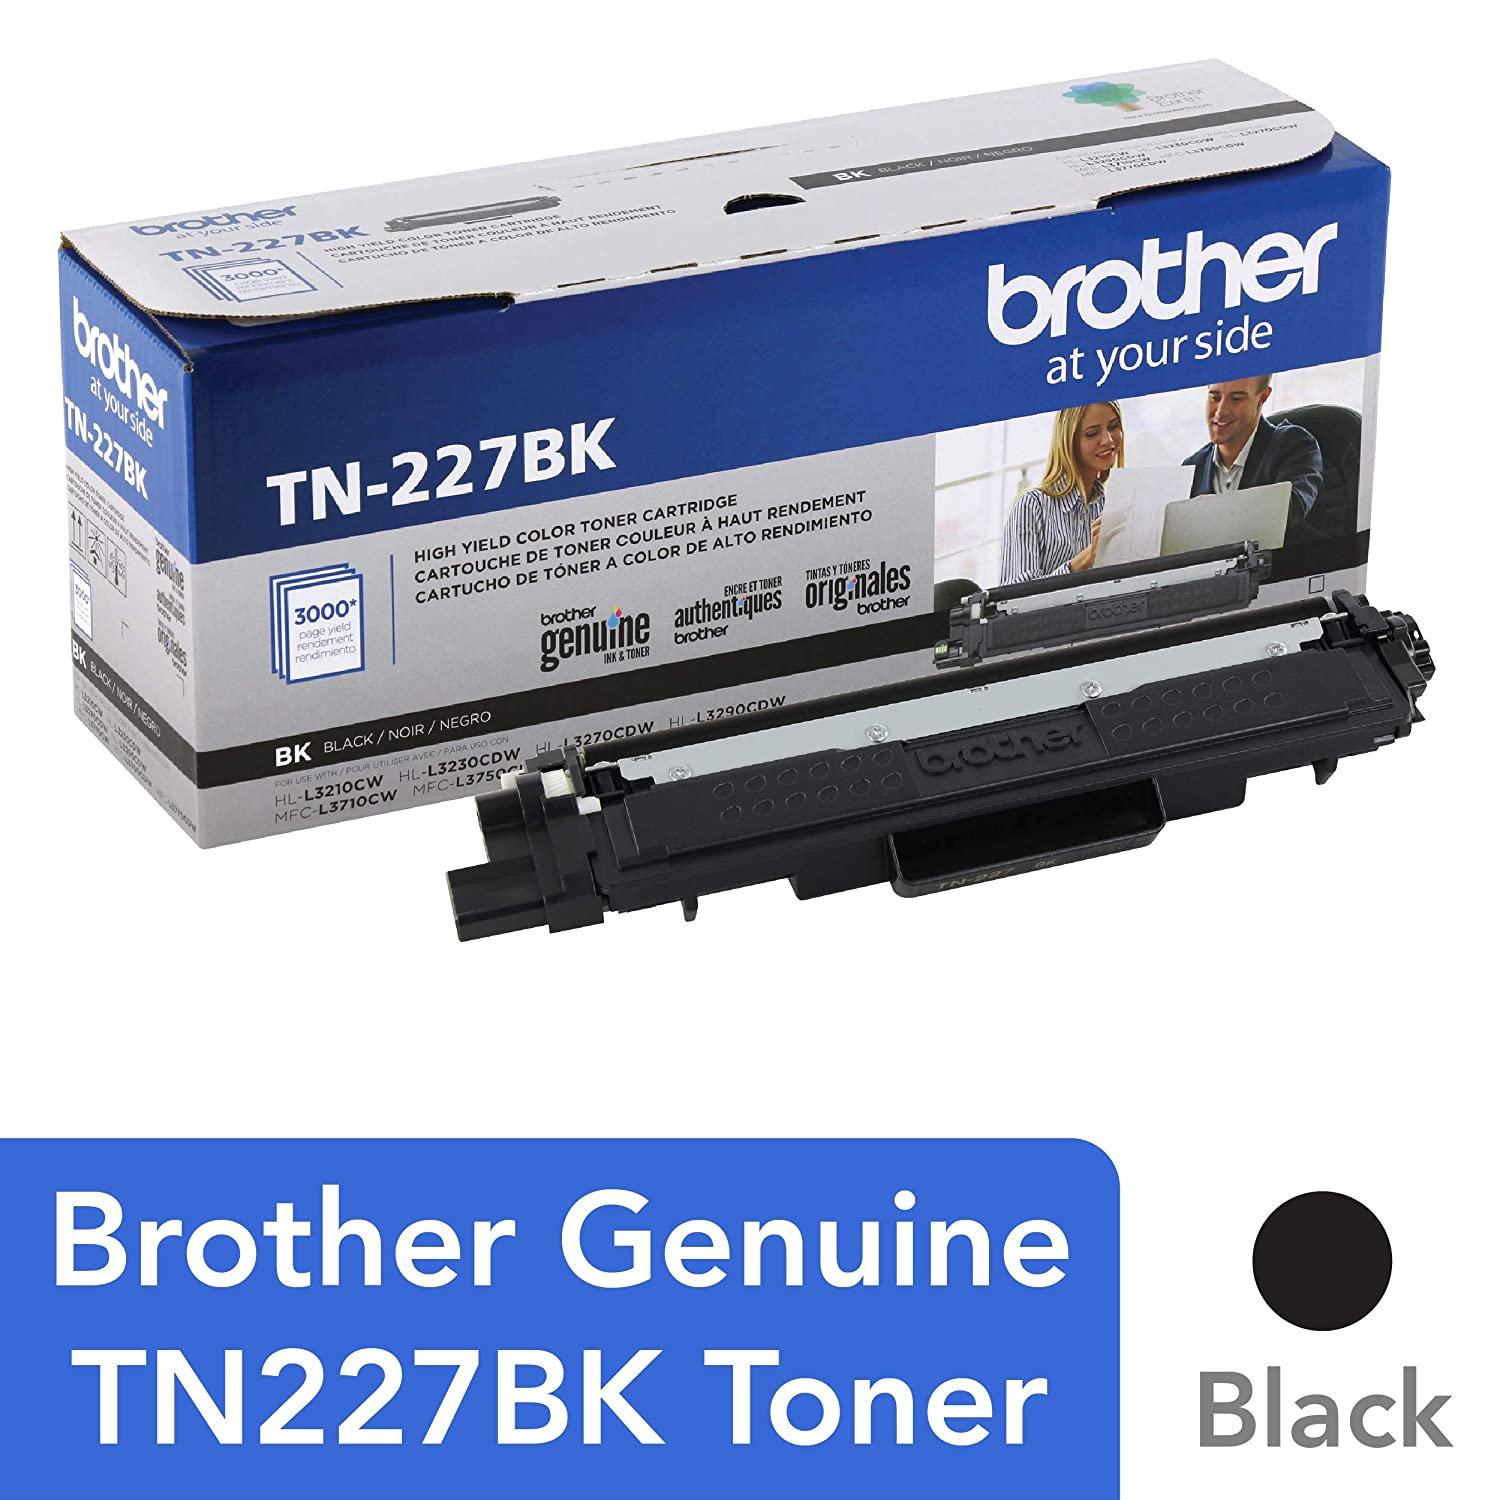 Brother Genuine TN227, TN227BK, High Yield Toner Cartridge,Replacement Black Toner, Page Yield Up to 3,000 Pages, TN227BK, Amazon Dash Available